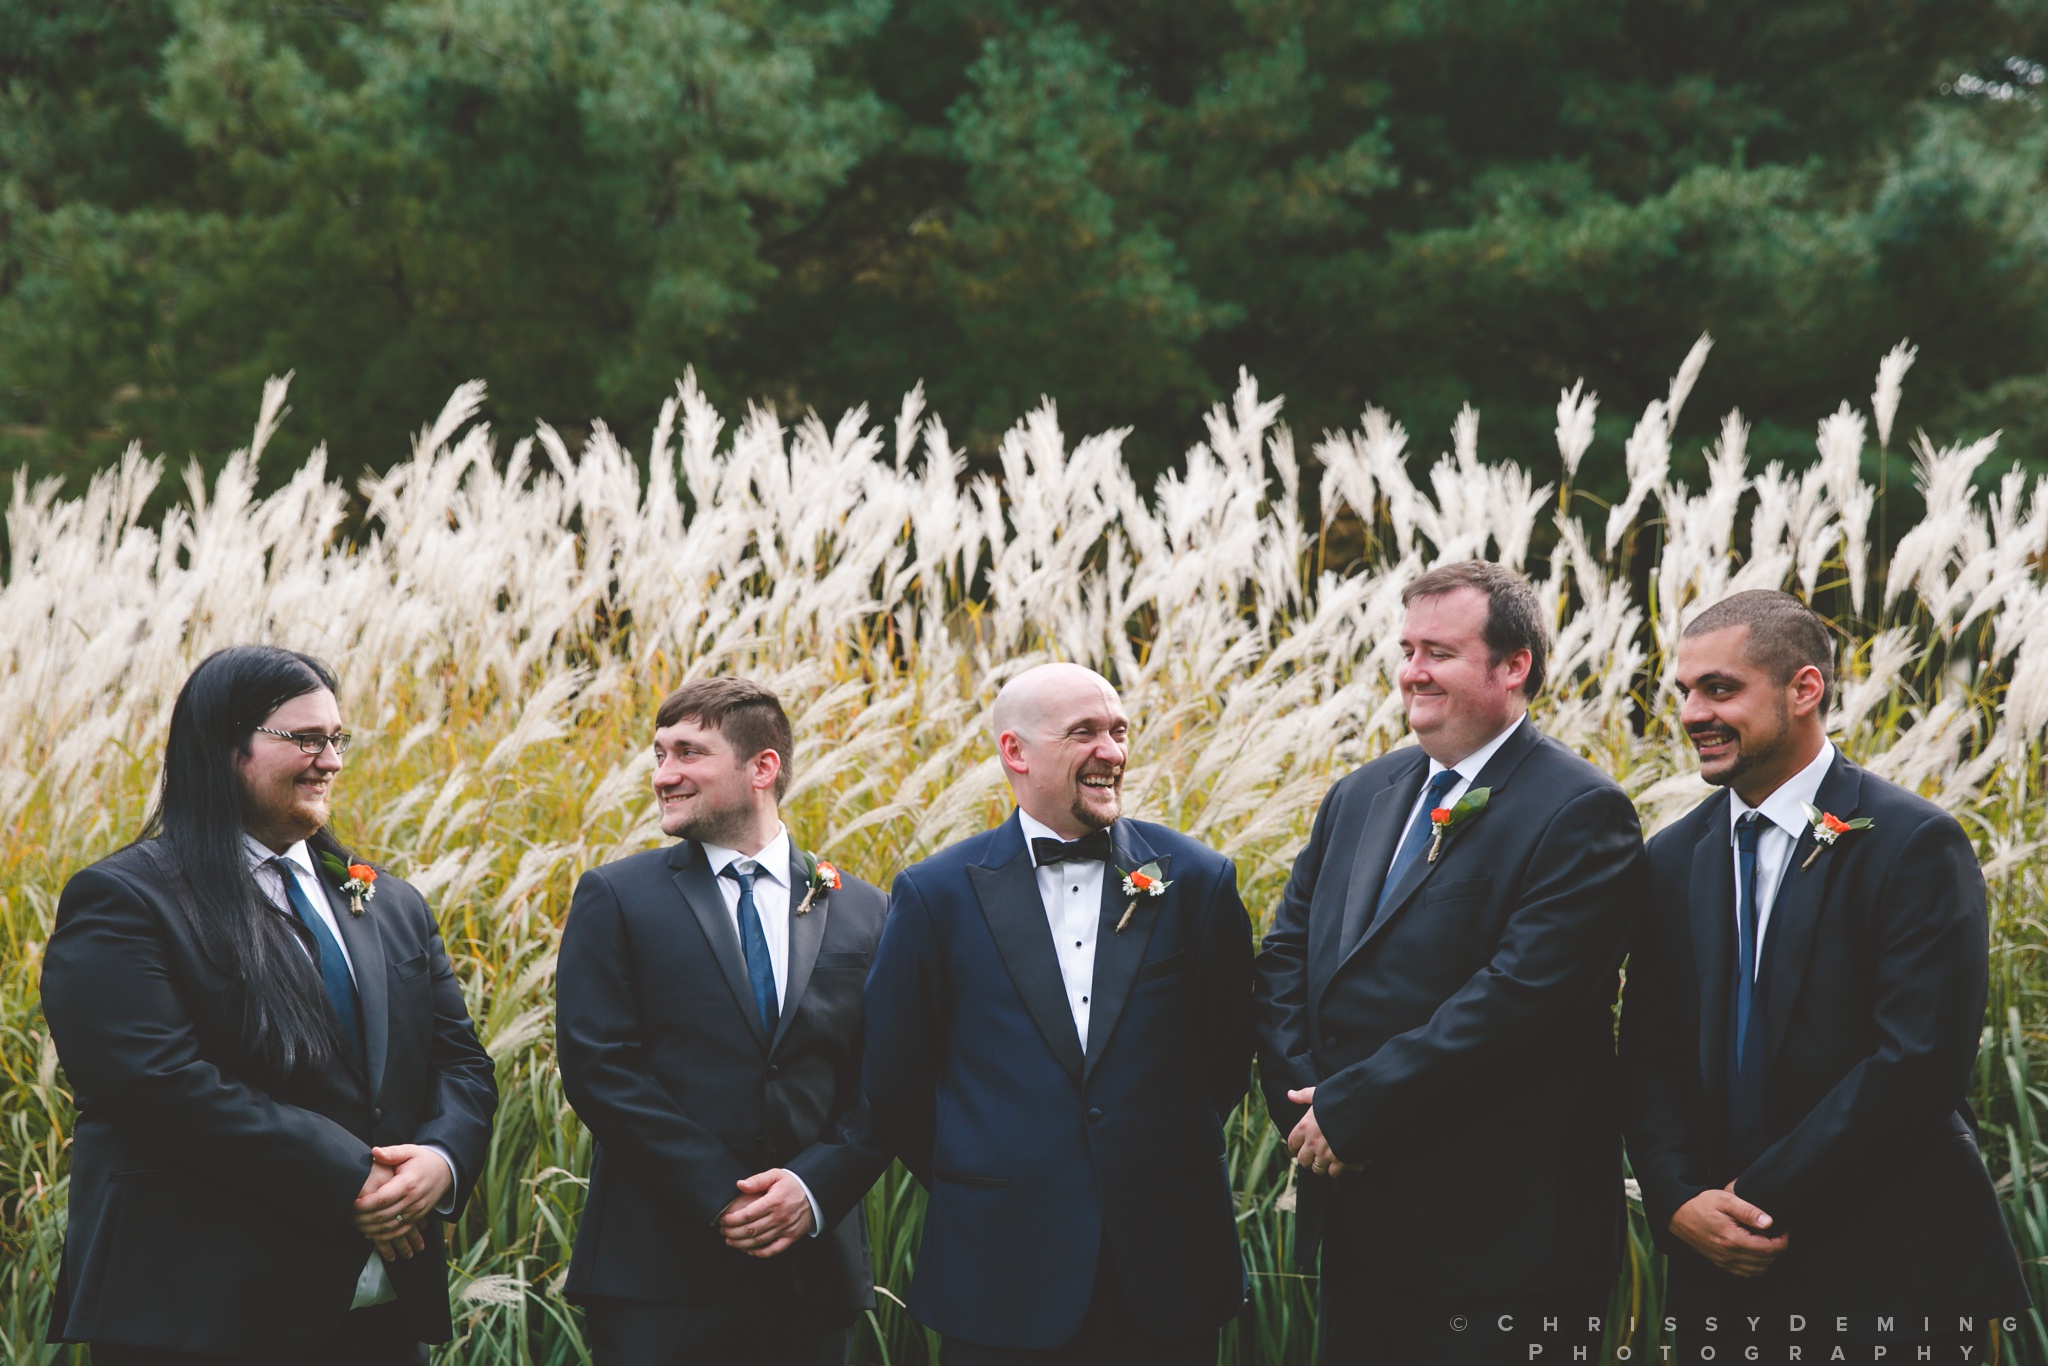 white_pines_IL_wedding_photography_0018.jpg